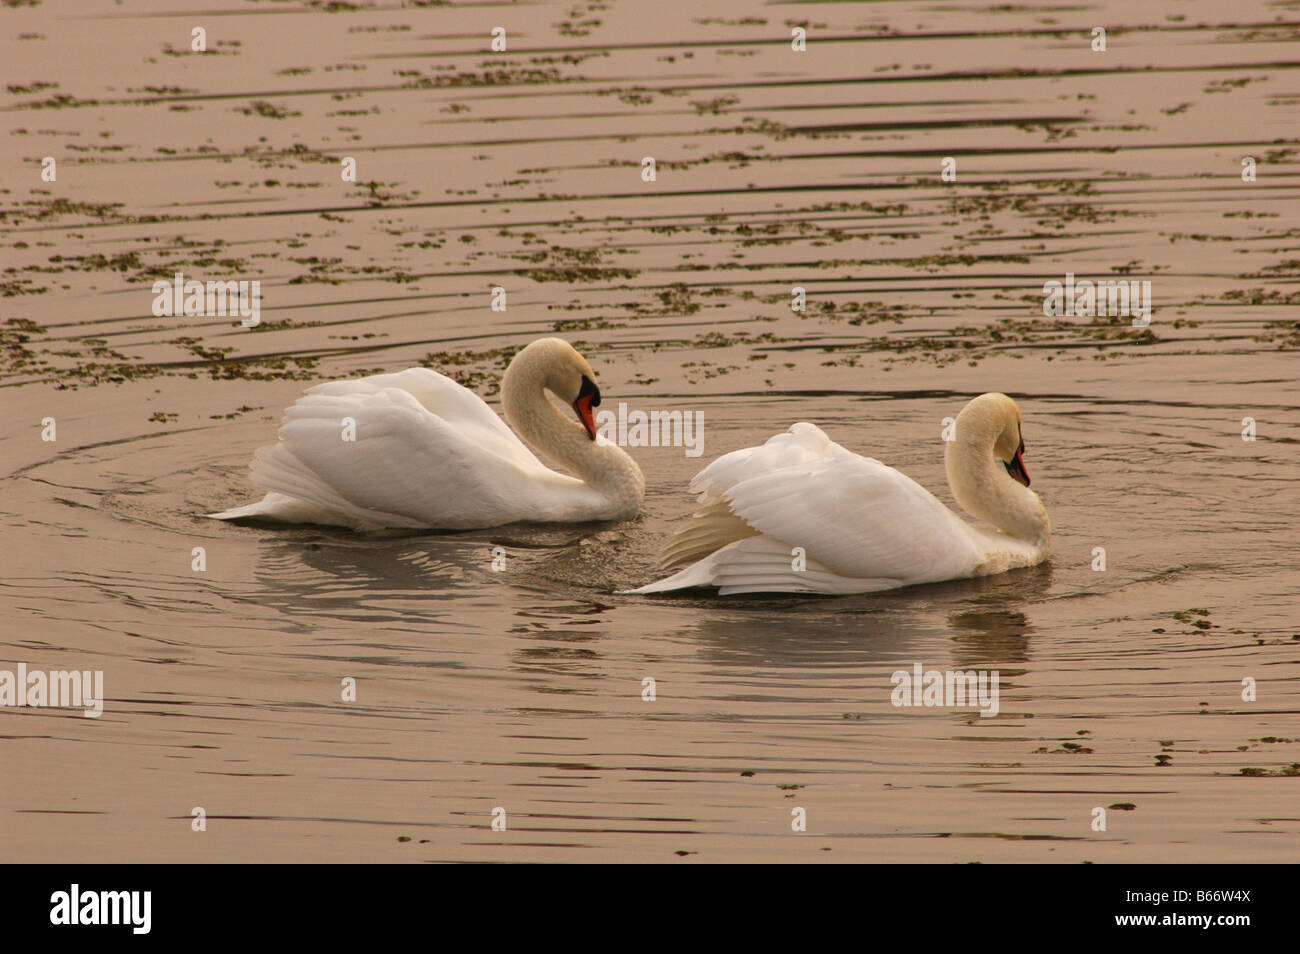 courting swan white lake dusk birds mate males - Stock Image